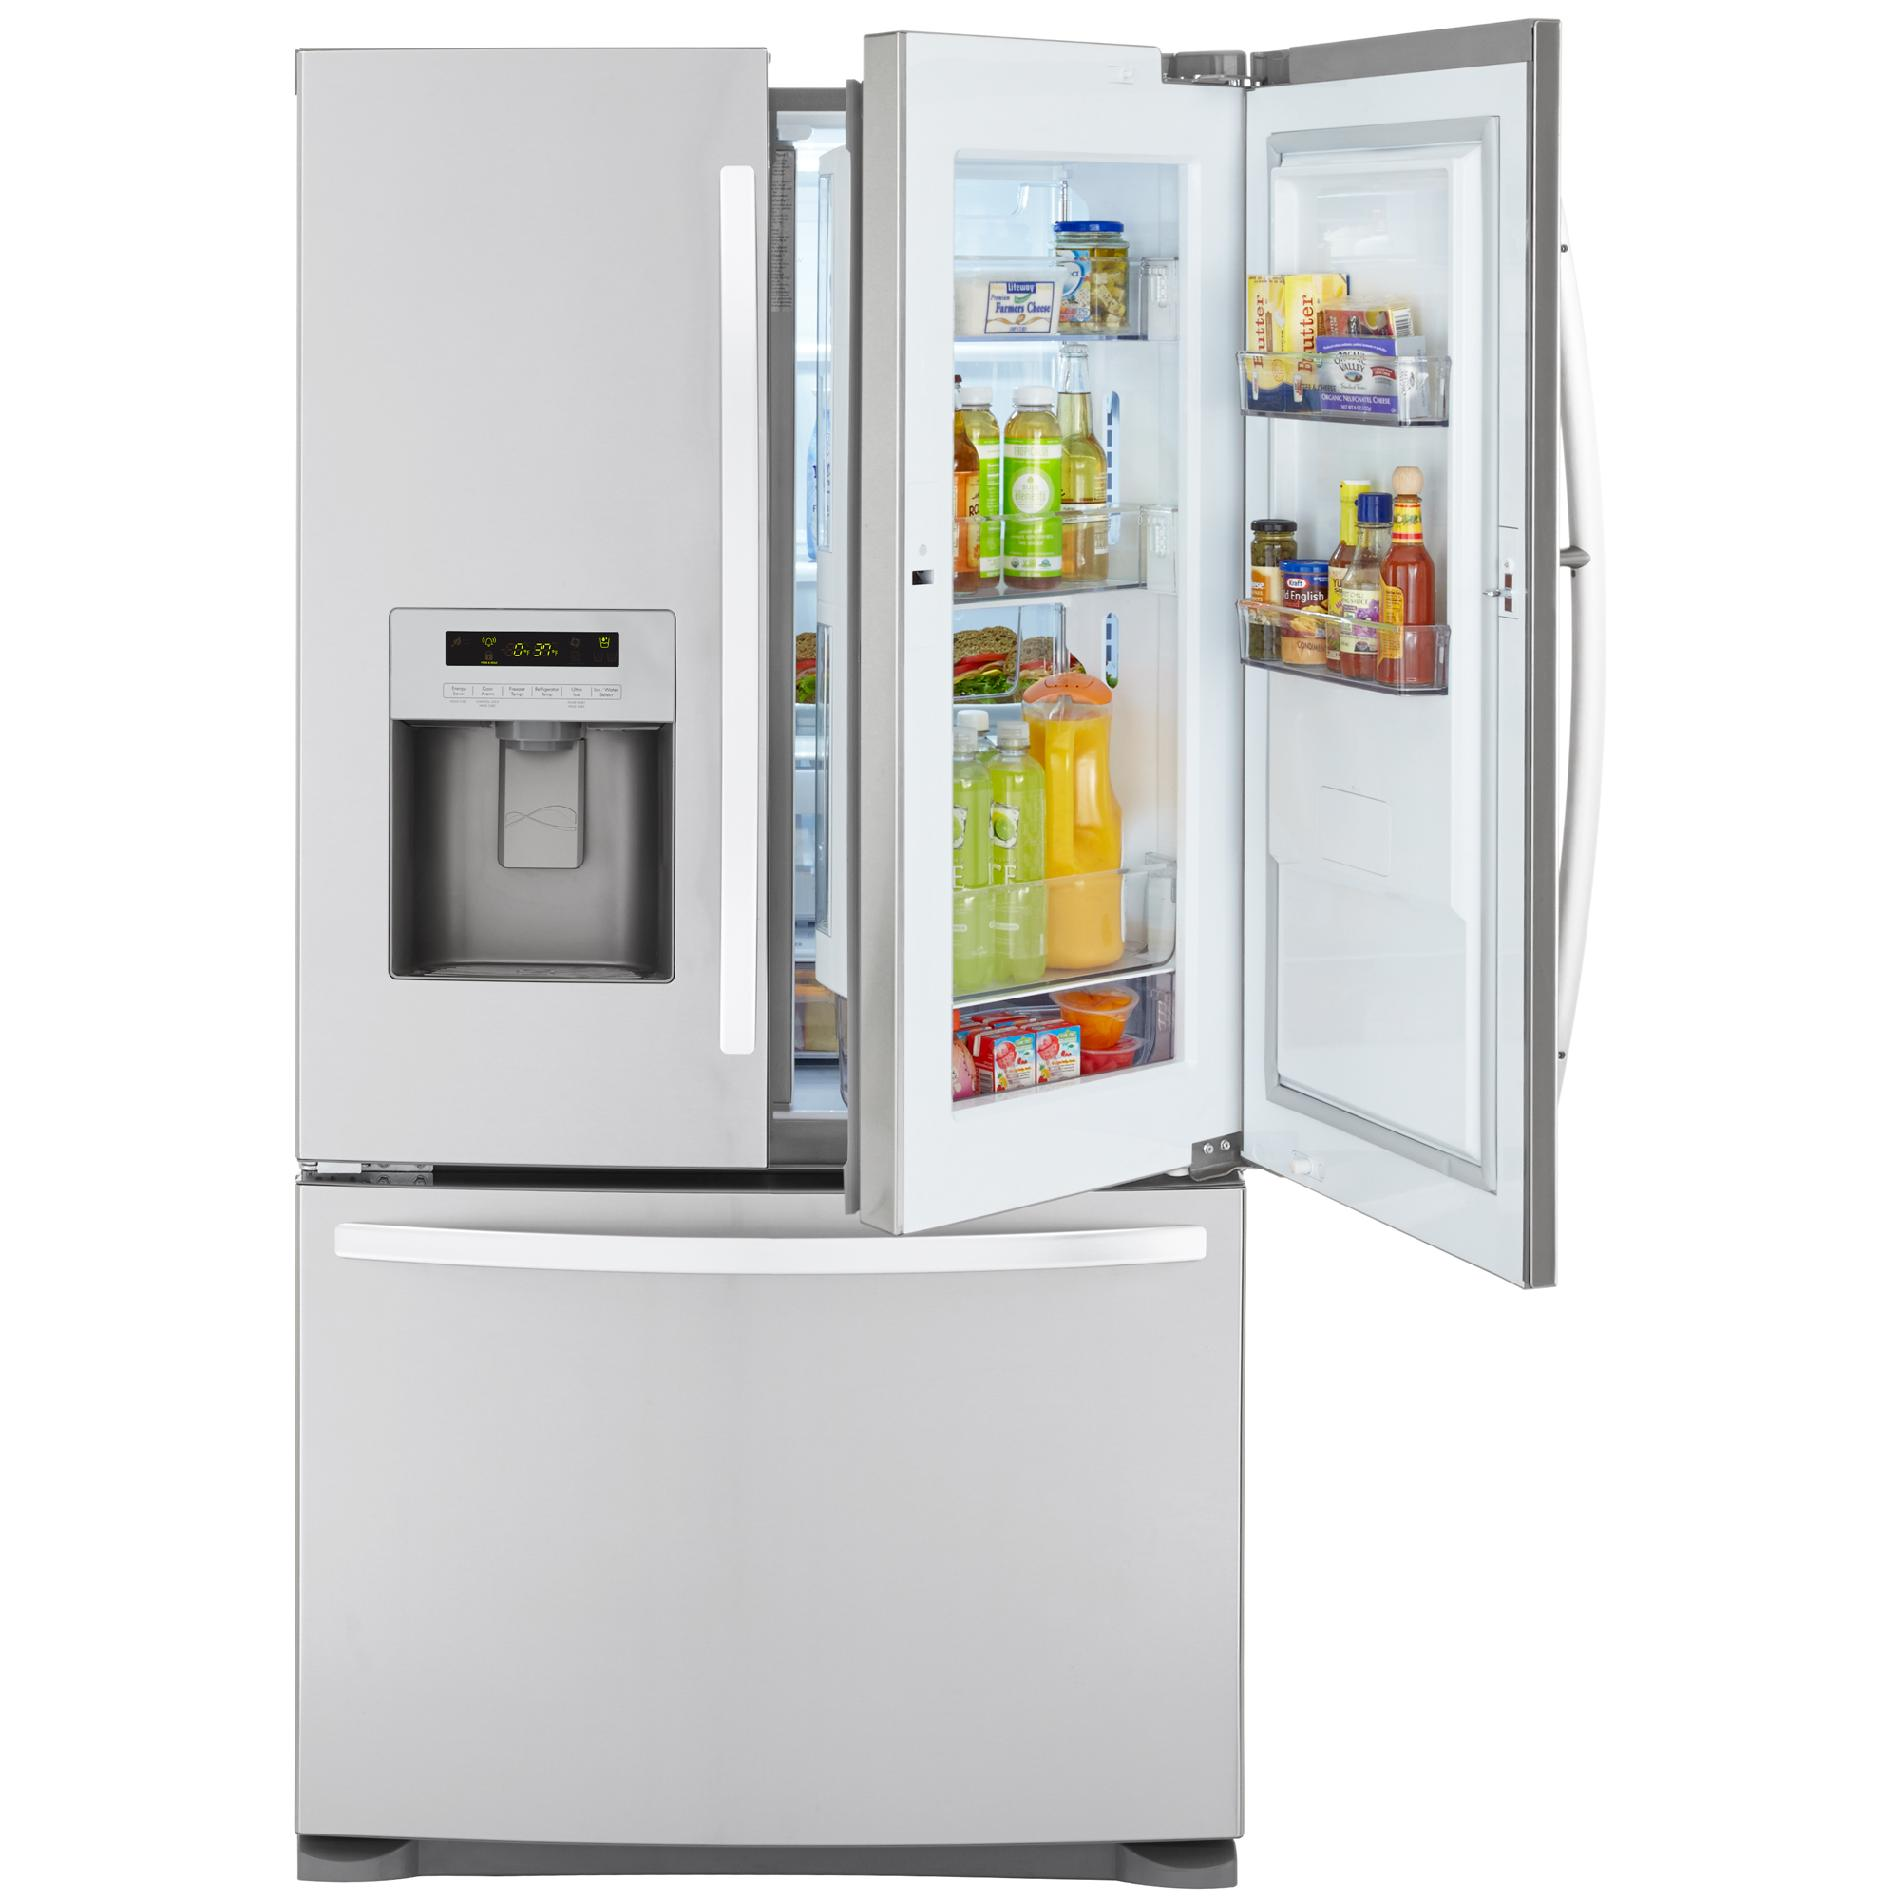 Kmart Freezer Kenmore French Door Bottom Freezer Refrigerator Kmart